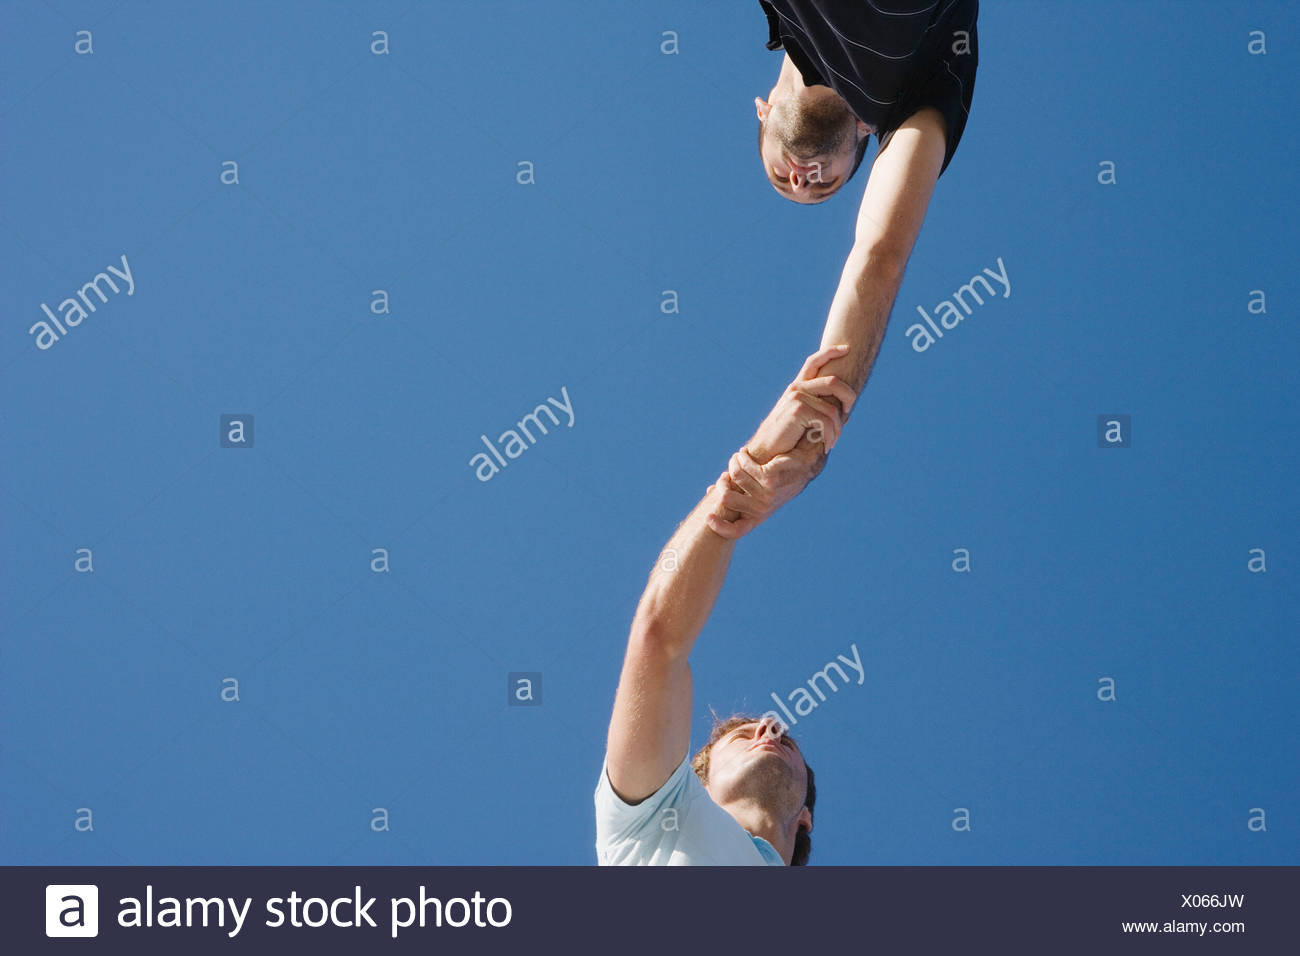 Two men holding each others arms - Stock Image